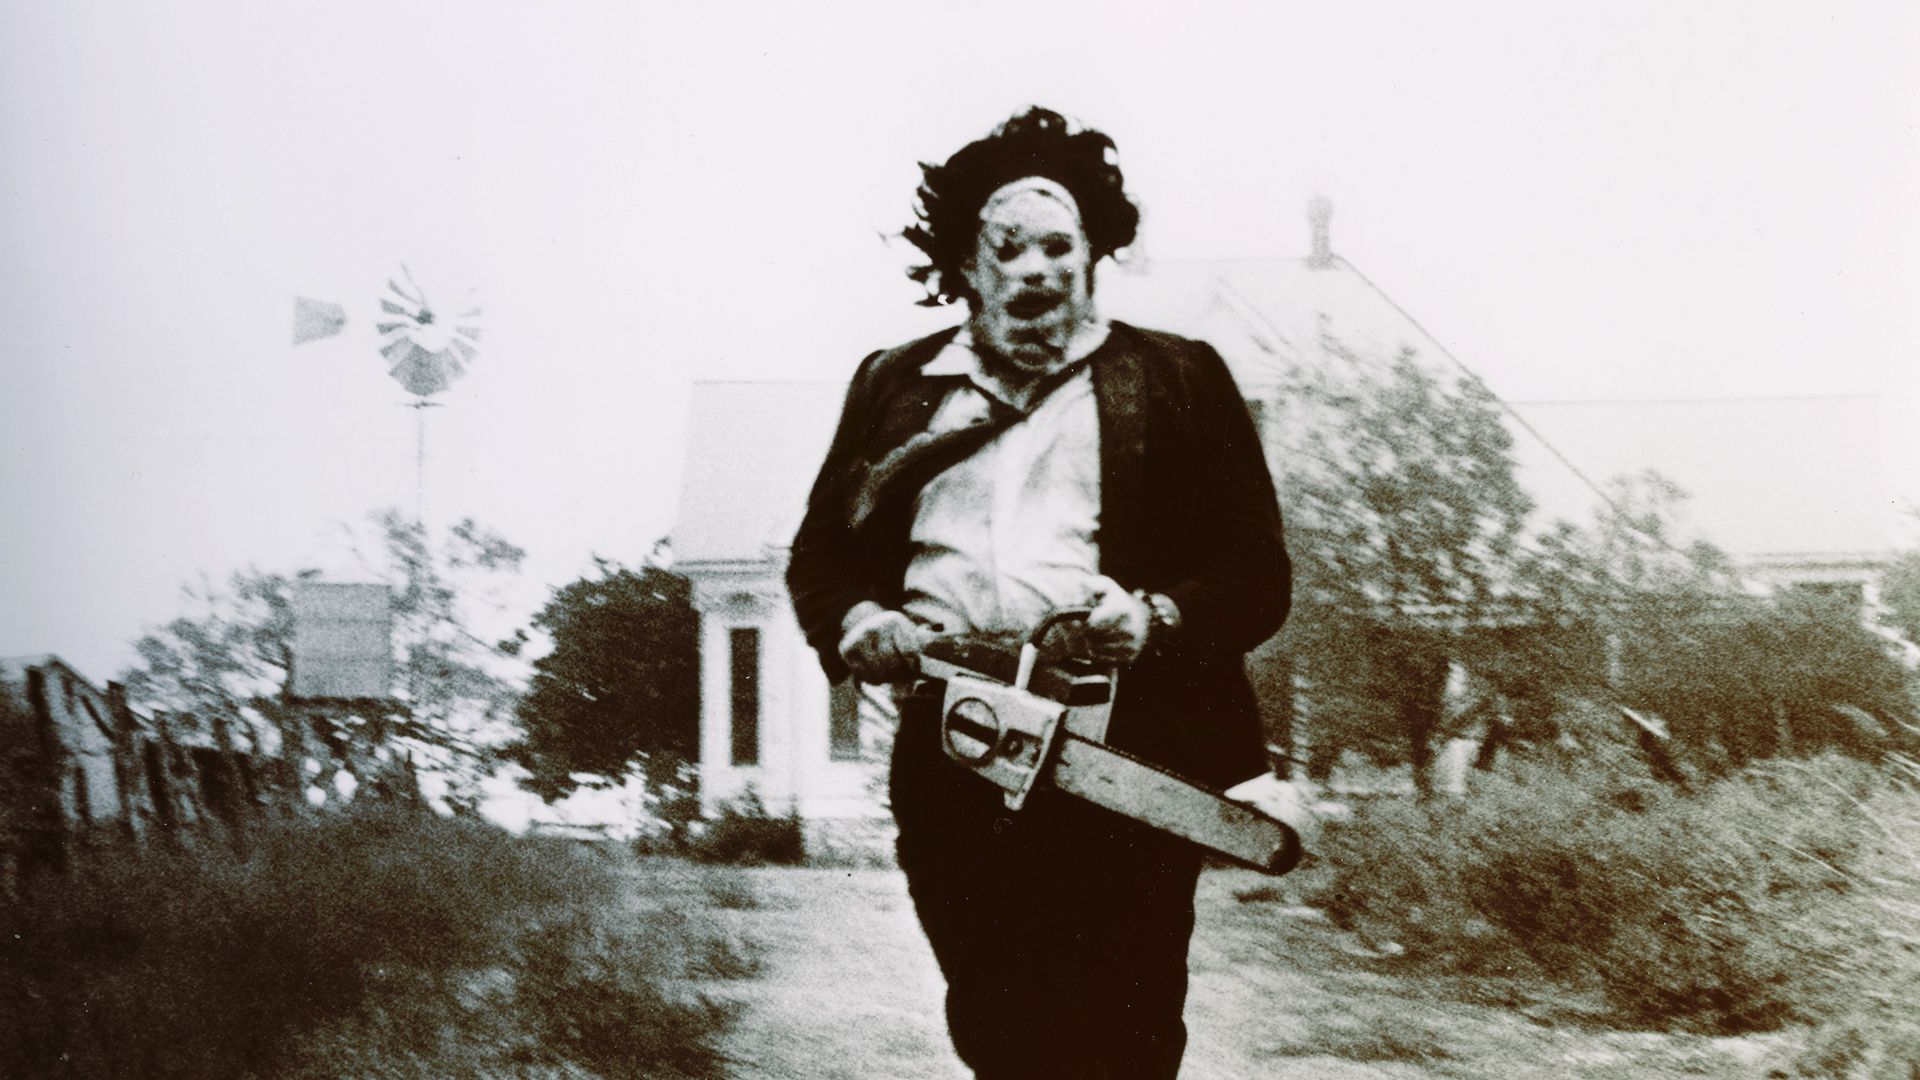 3016628-poster-p-1-leatherface.jpg